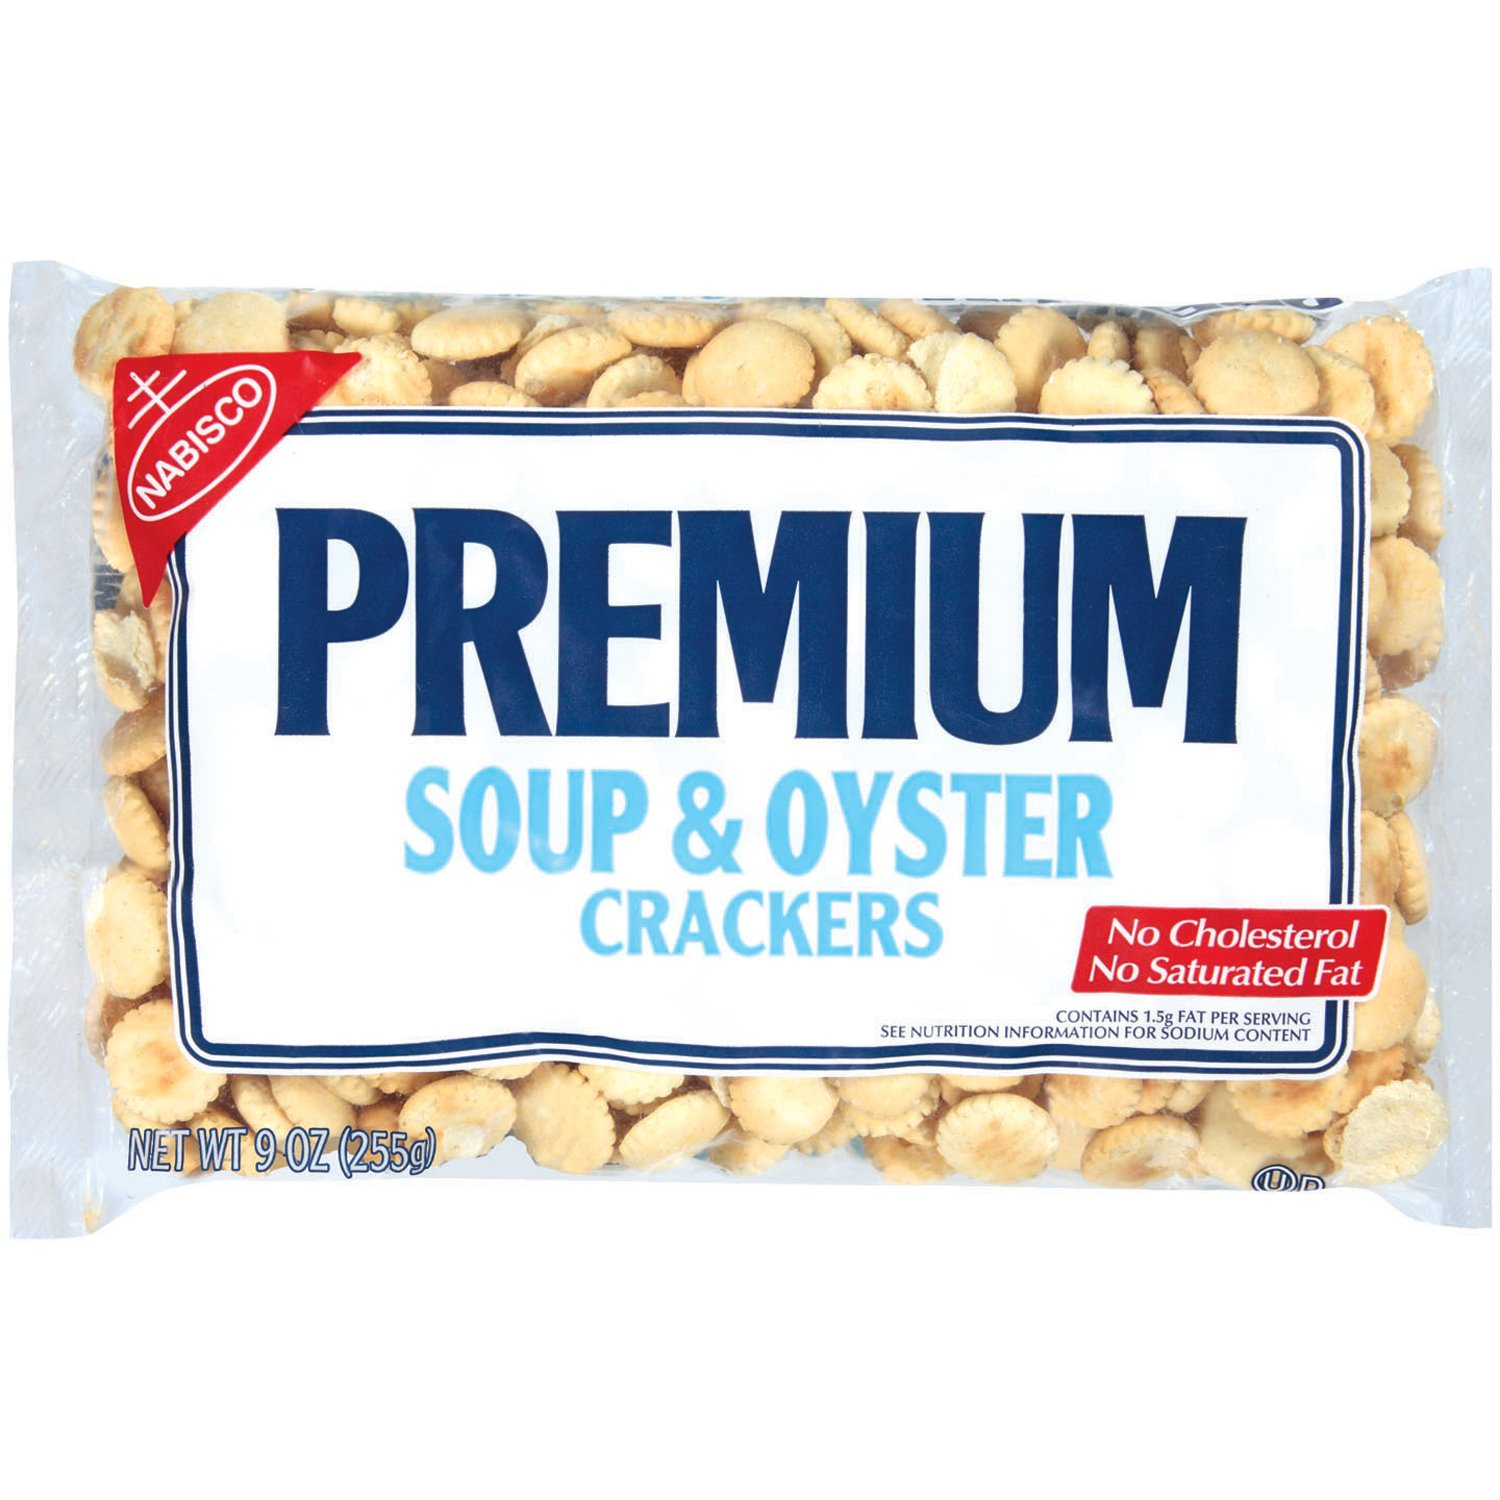 Premium Soup & Oyster Crackers, 9 Ounce